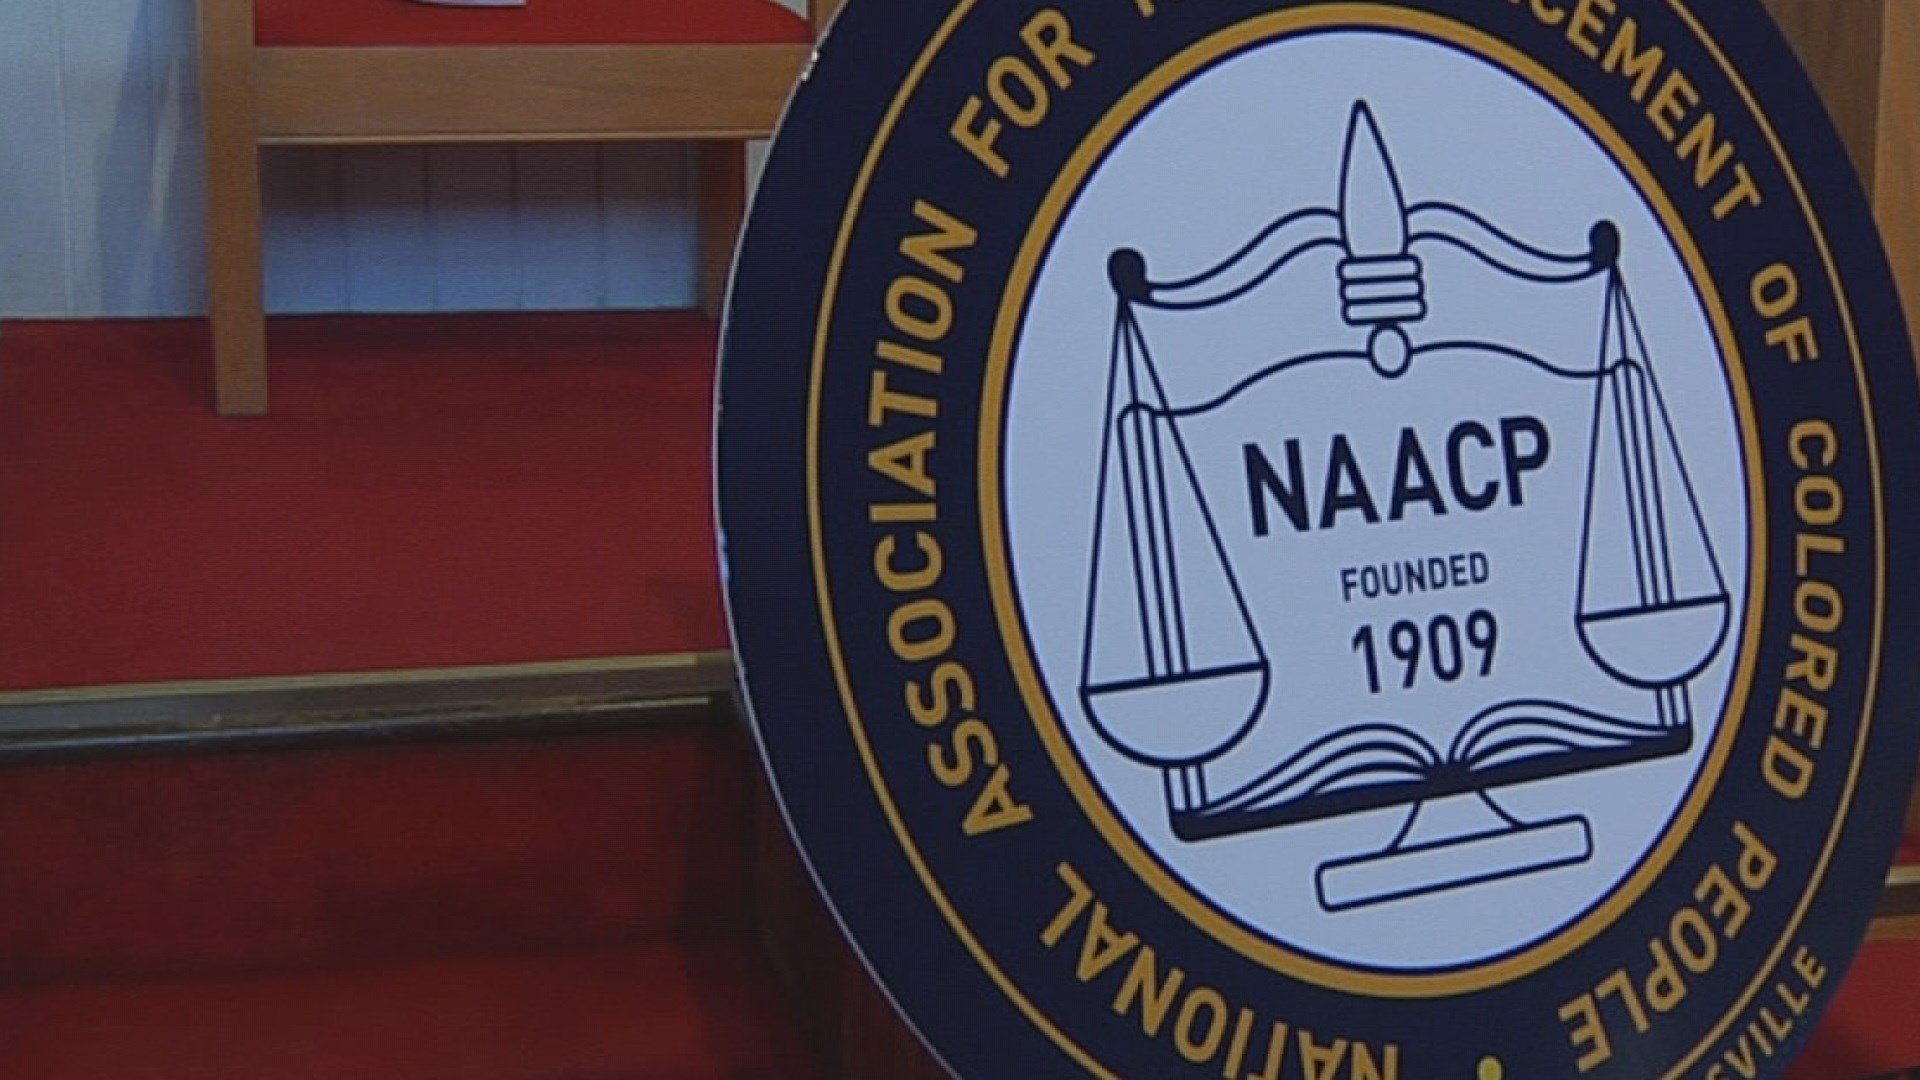 State conference of NAACP speaks out to end qualified immunity